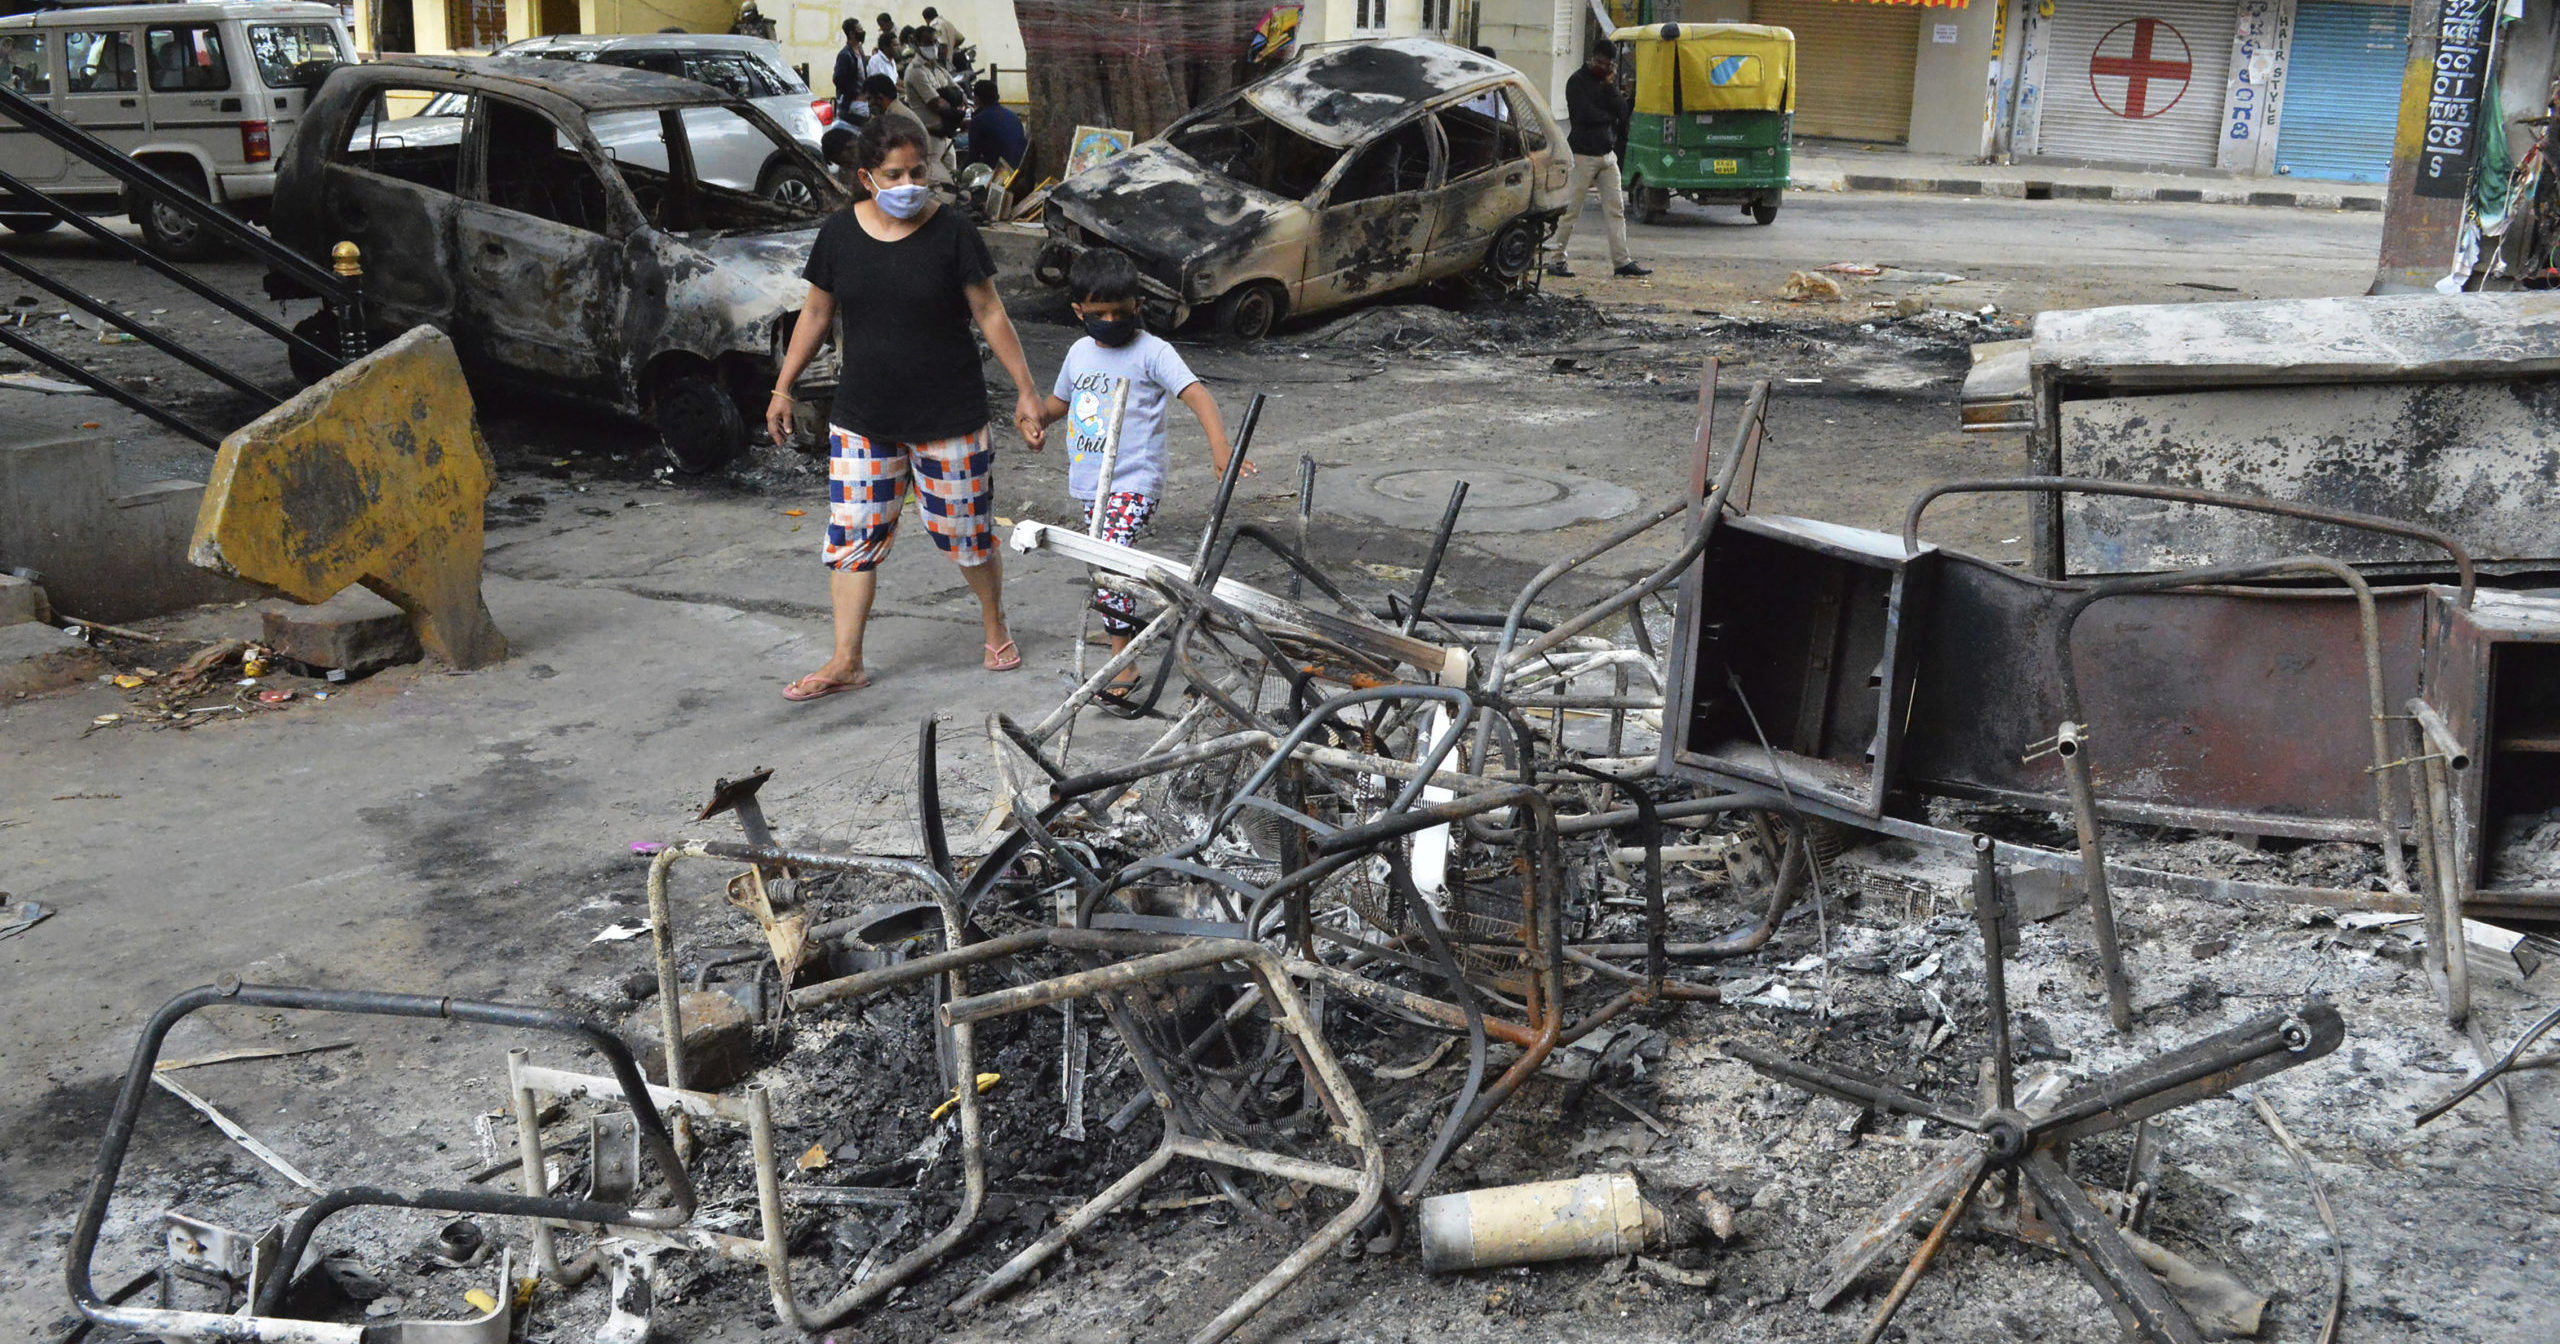 A woman and a child walks past the wreckage of vehicles and furniture burnt during violent protests in Bengaluru, India, on Aug. 12, 2020. At least three people have died in the southern Indian city also known as Bangalore after hundreds of demonstrators clashed with the police overnight against a Facebook post considered offensive to Muslims, attacking a police station and setting fire to vehicles, police said.